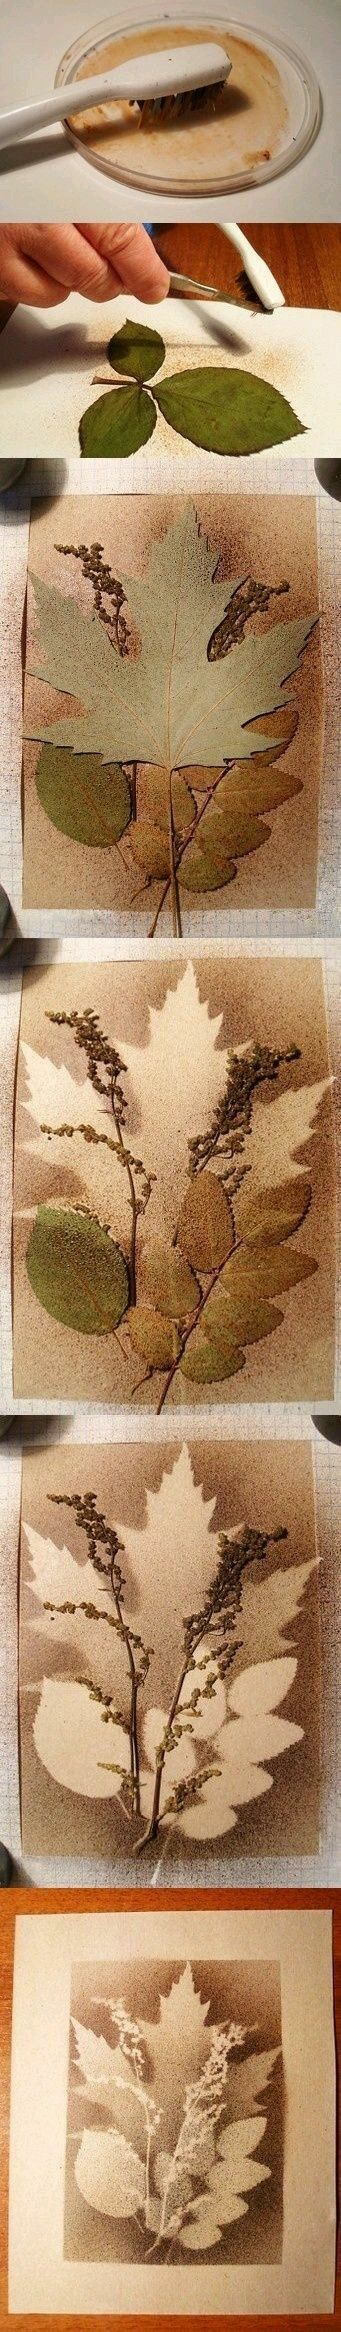 Leaves on pinterest autumn leaves fall leaves crafts and fall - Diy Autumn Leaf Wall Art Diy Craft Crafts Craft Ideas Easy Crafts Diy Ideas Diy Crafts Easy Diy Diy Home Decorations Diy Art Craft Decor Craft Art